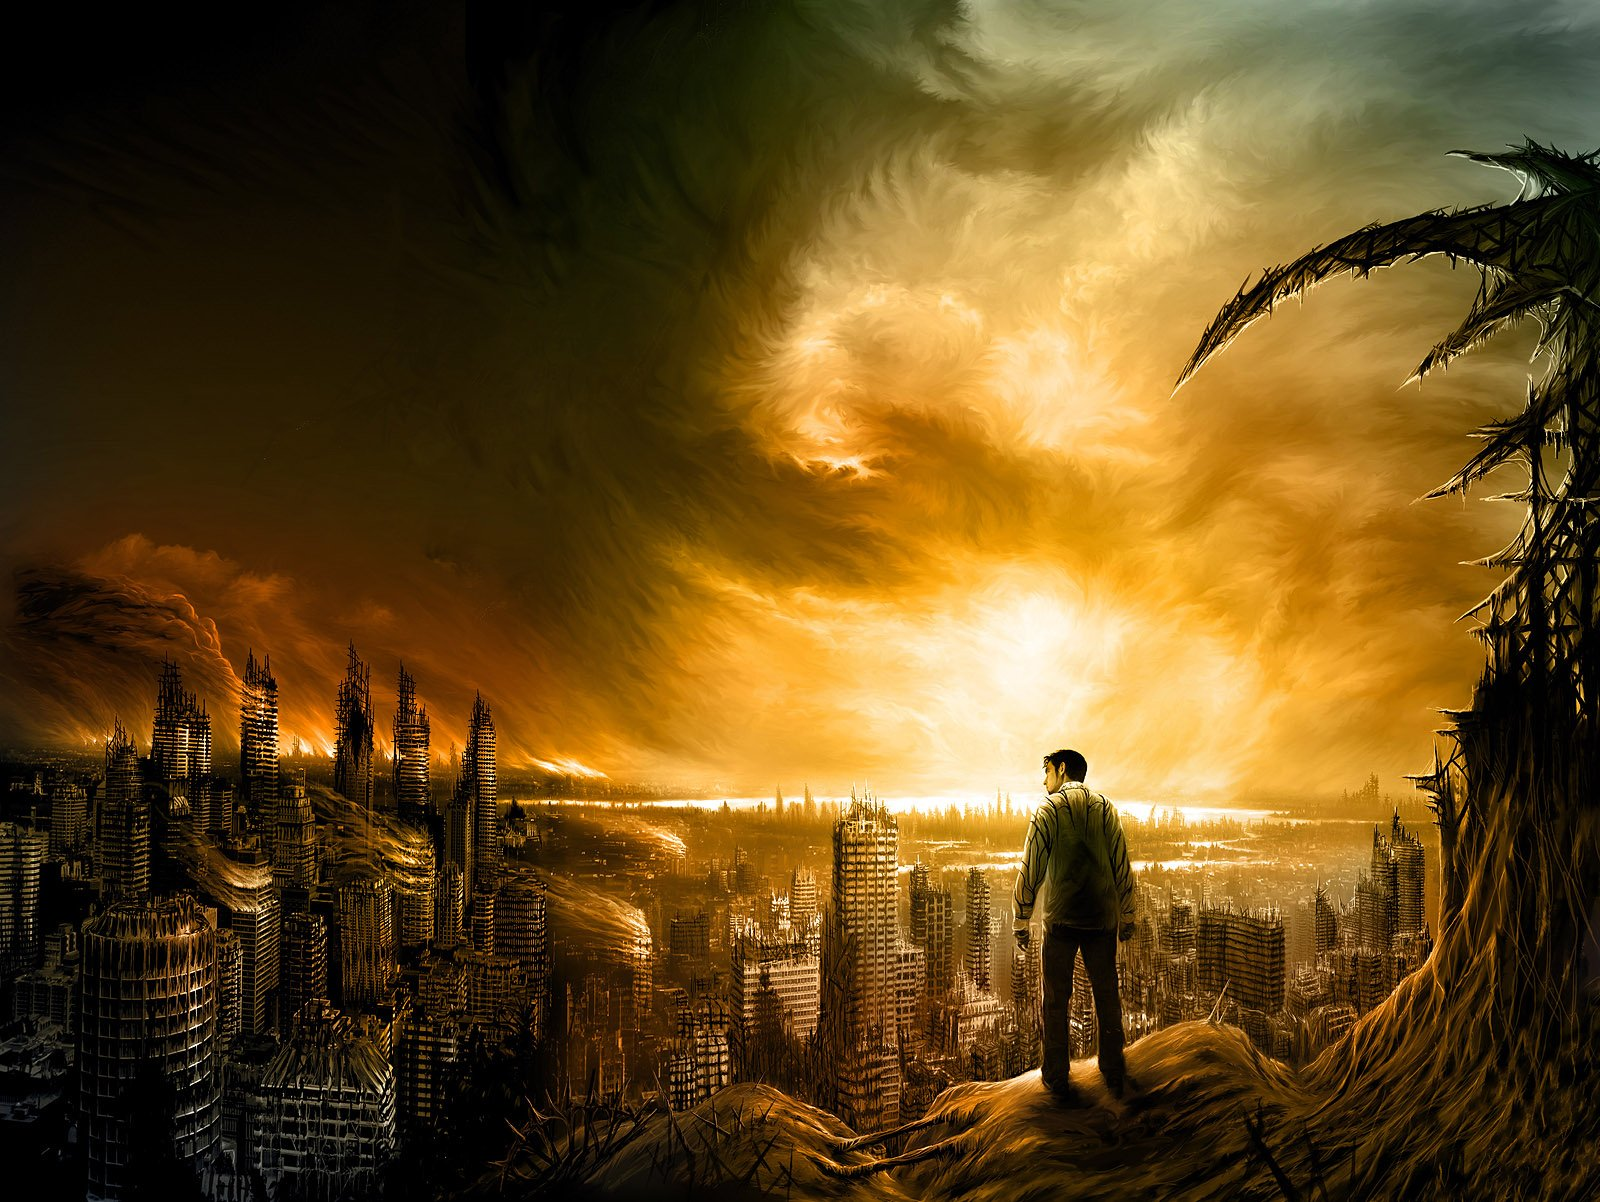 Sci Fi - Post Apocalyptic  Apocalyptic Sci Fi City Building Destruction Wallpaper